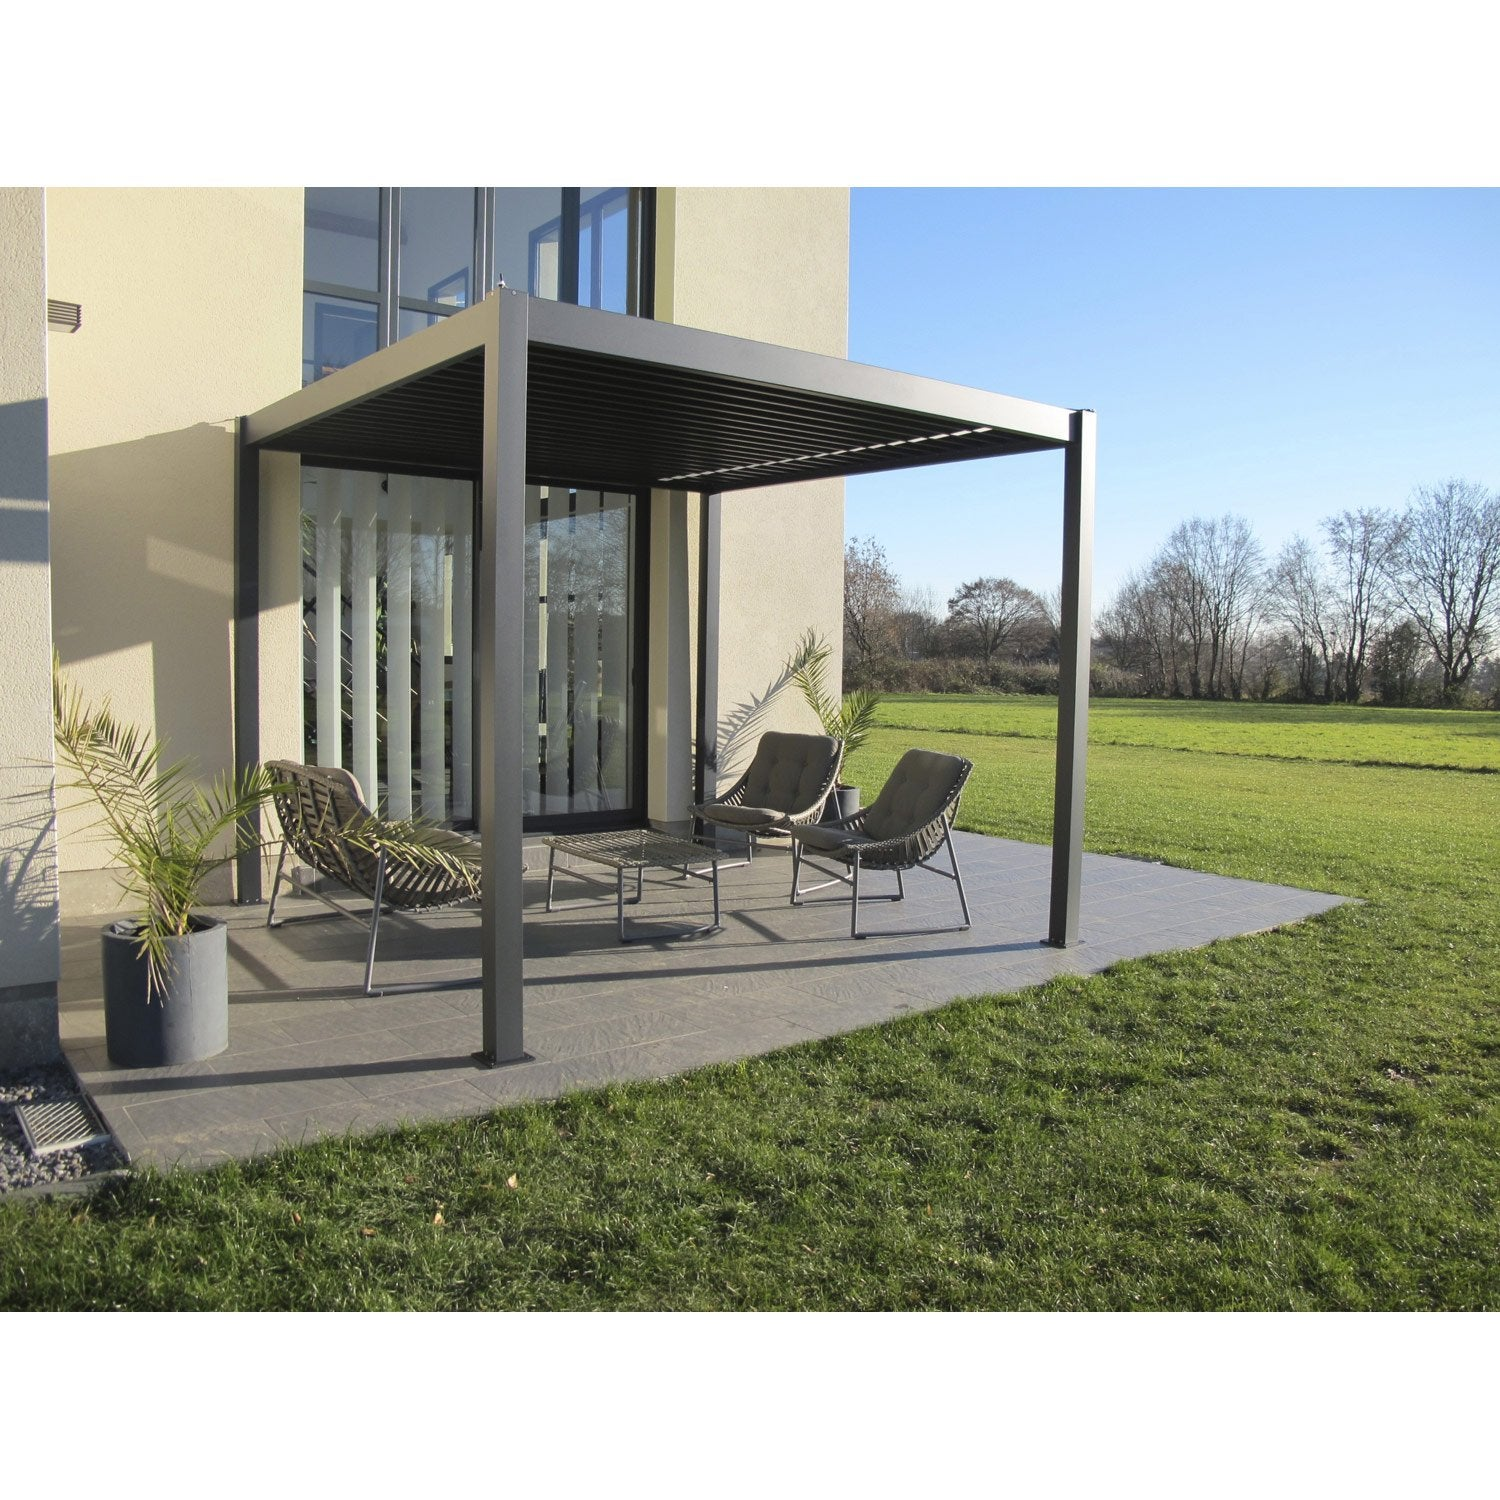 pergola a leroy merlin samling av de senaste. Black Bedroom Furniture Sets. Home Design Ideas